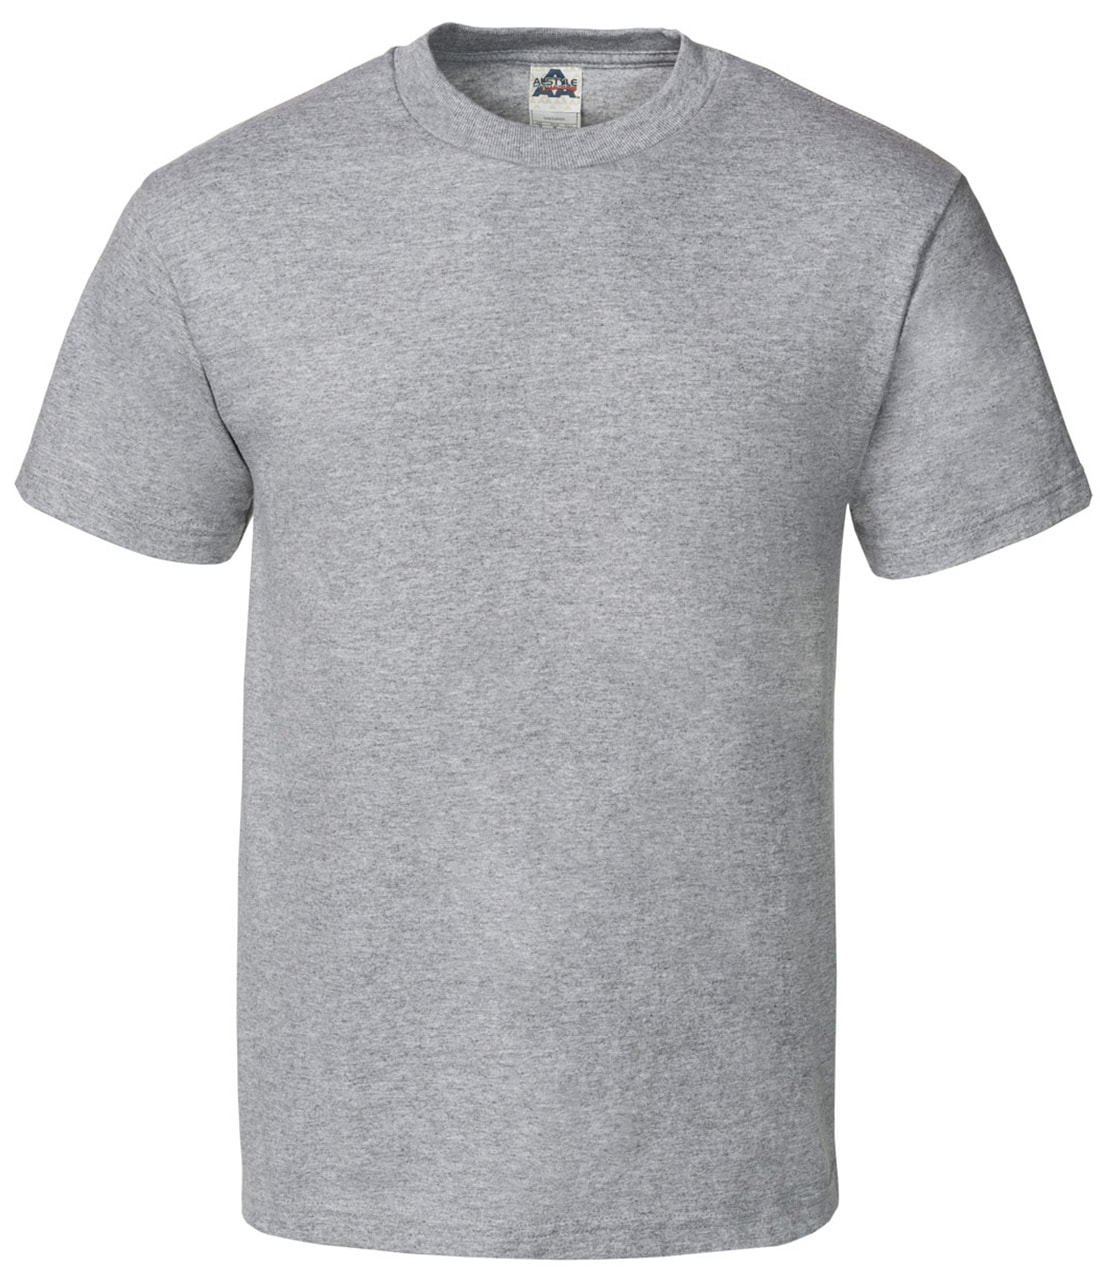 Picture of Alstyle Apparel Classic Adult Tee